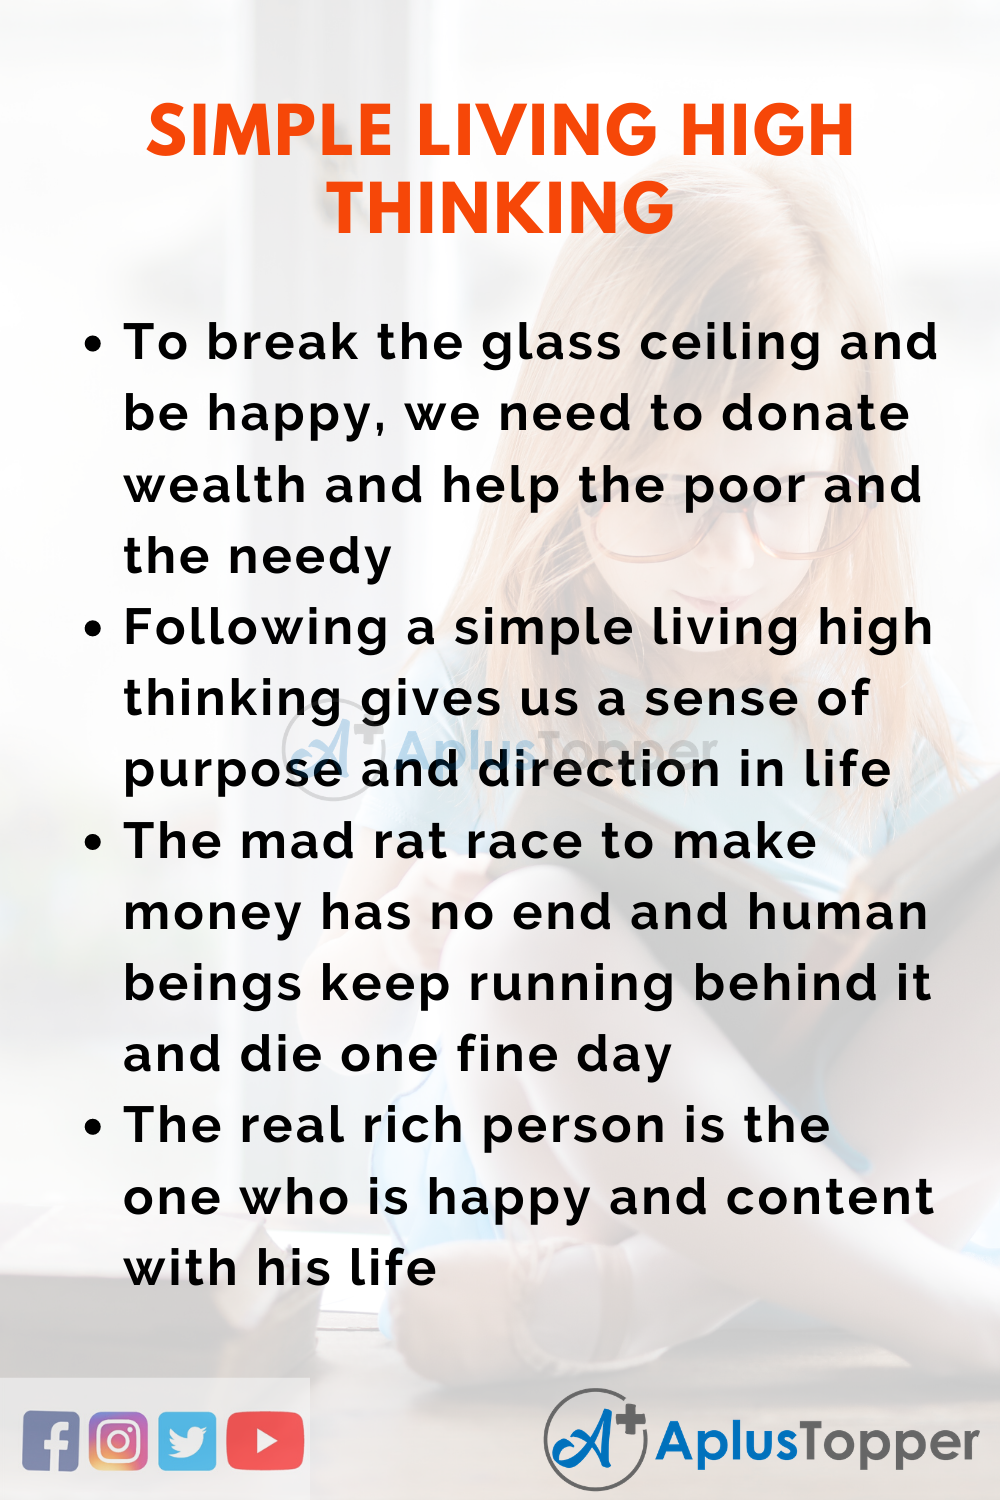 Essay About Simple Living High Thinking